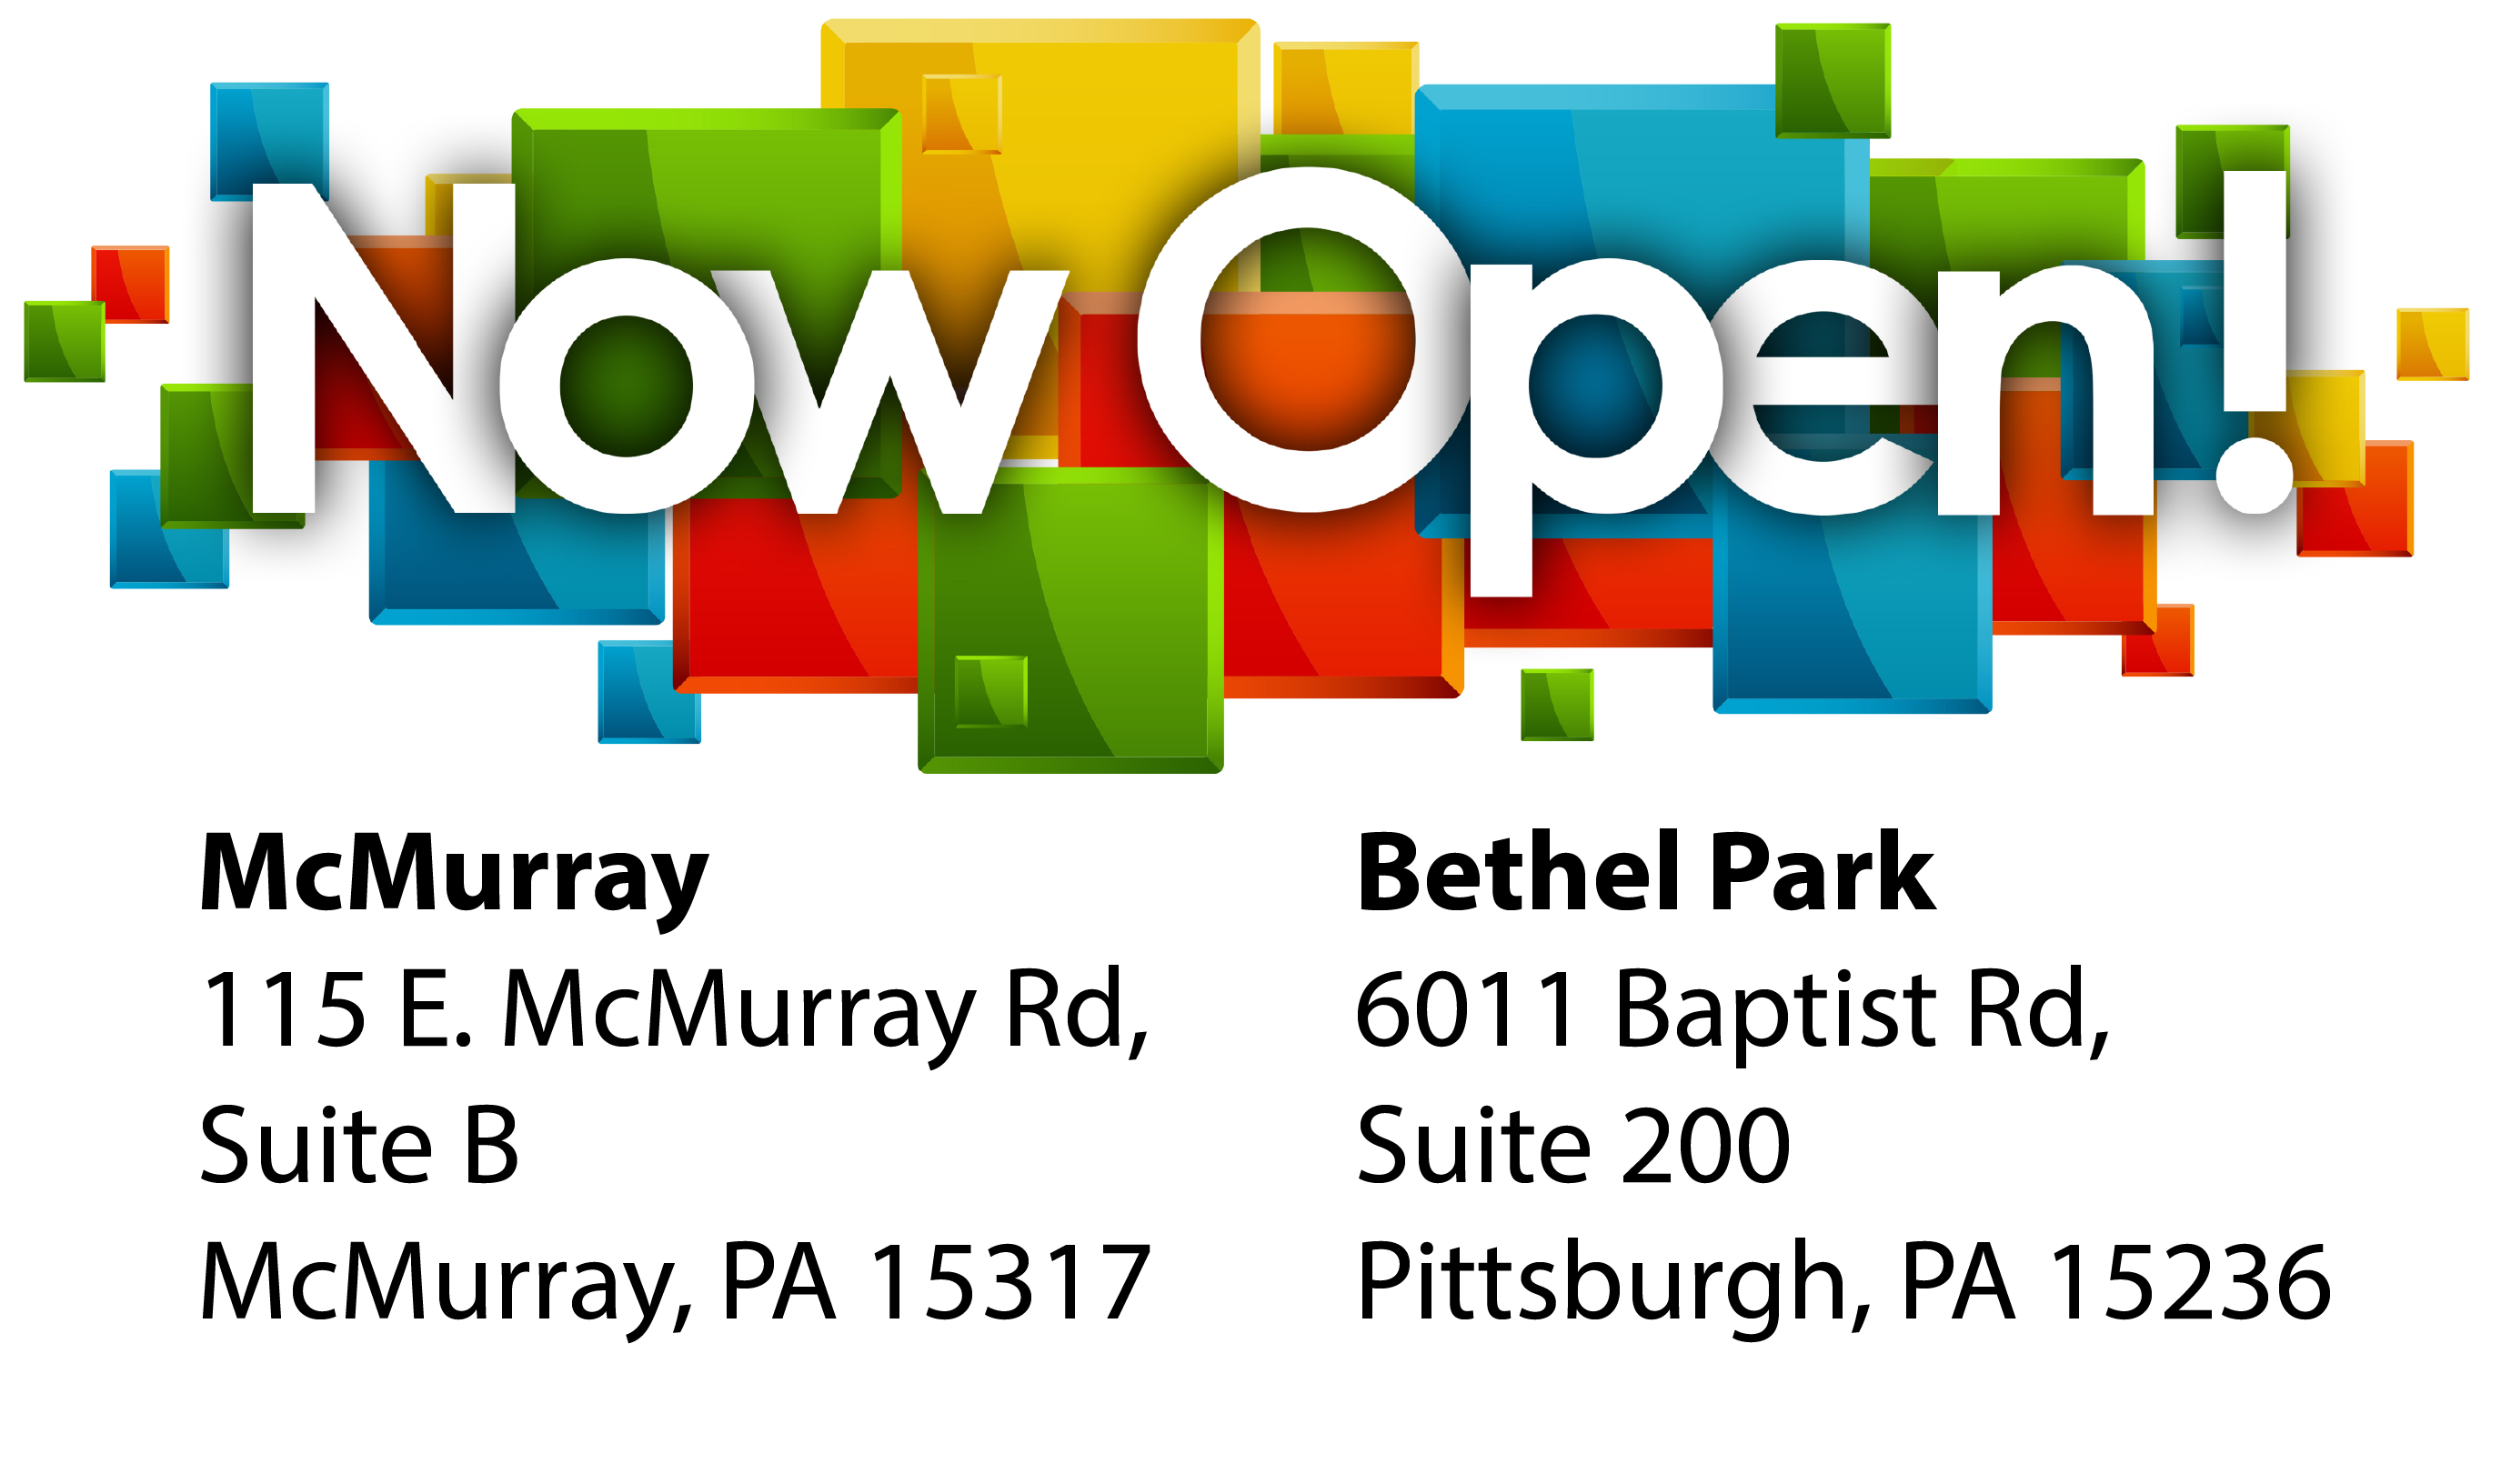 New Branches in McMurray and Bethel Park are now Open!